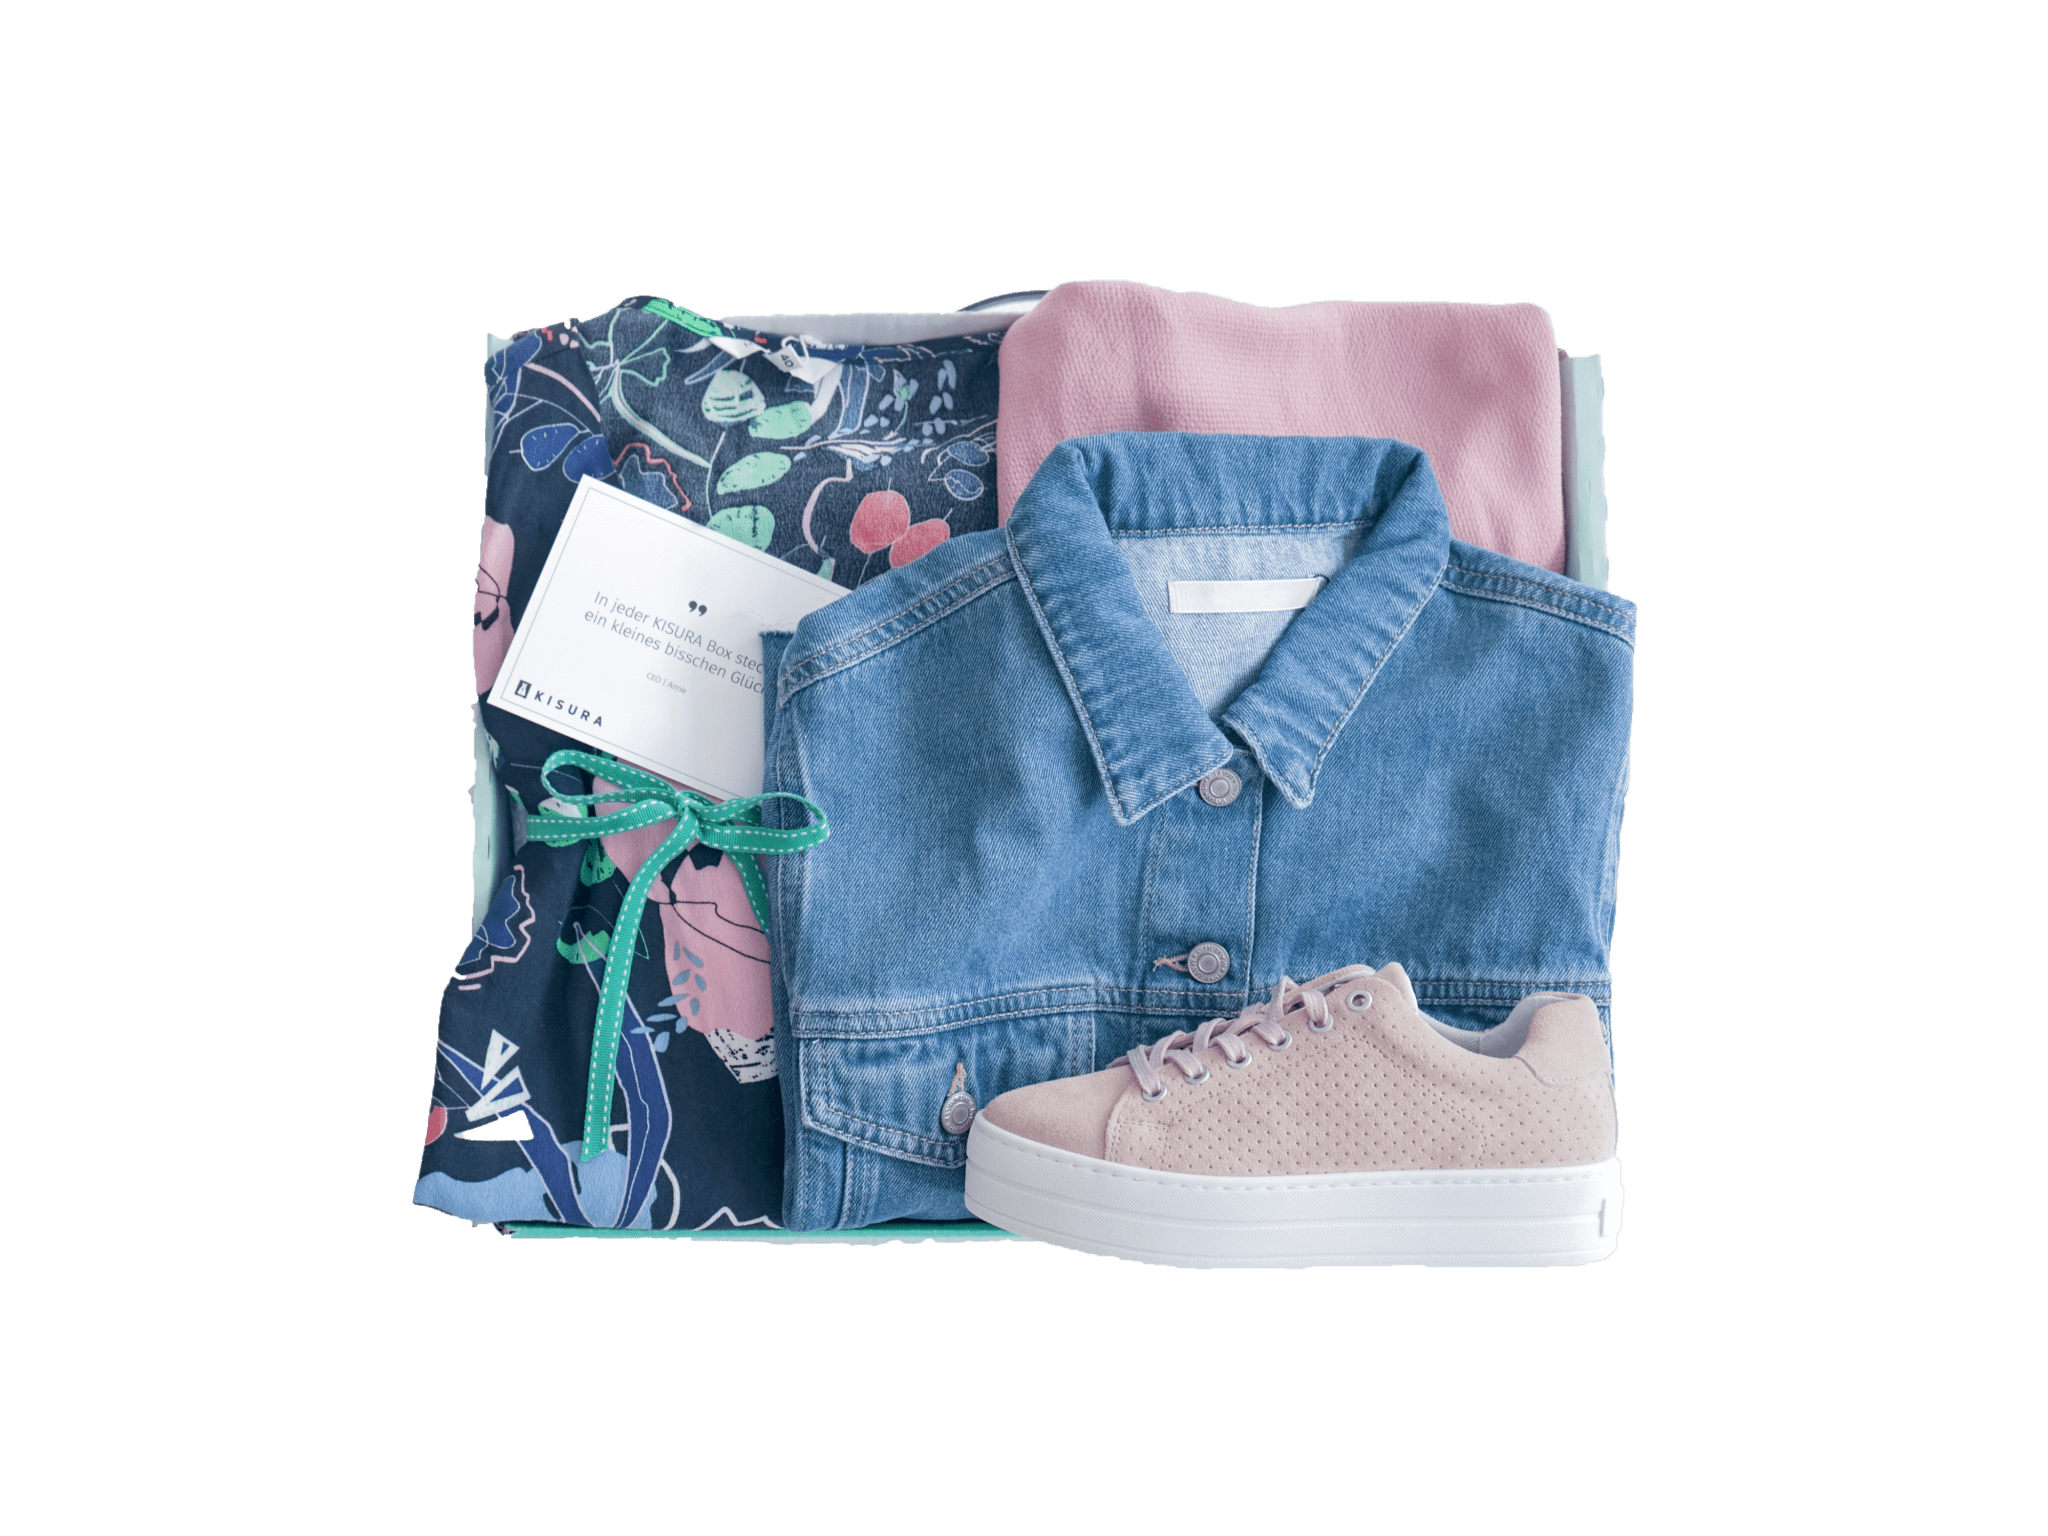 Outfitbox mit Jeansjacke, rosa Sneakern und Blumenbluse